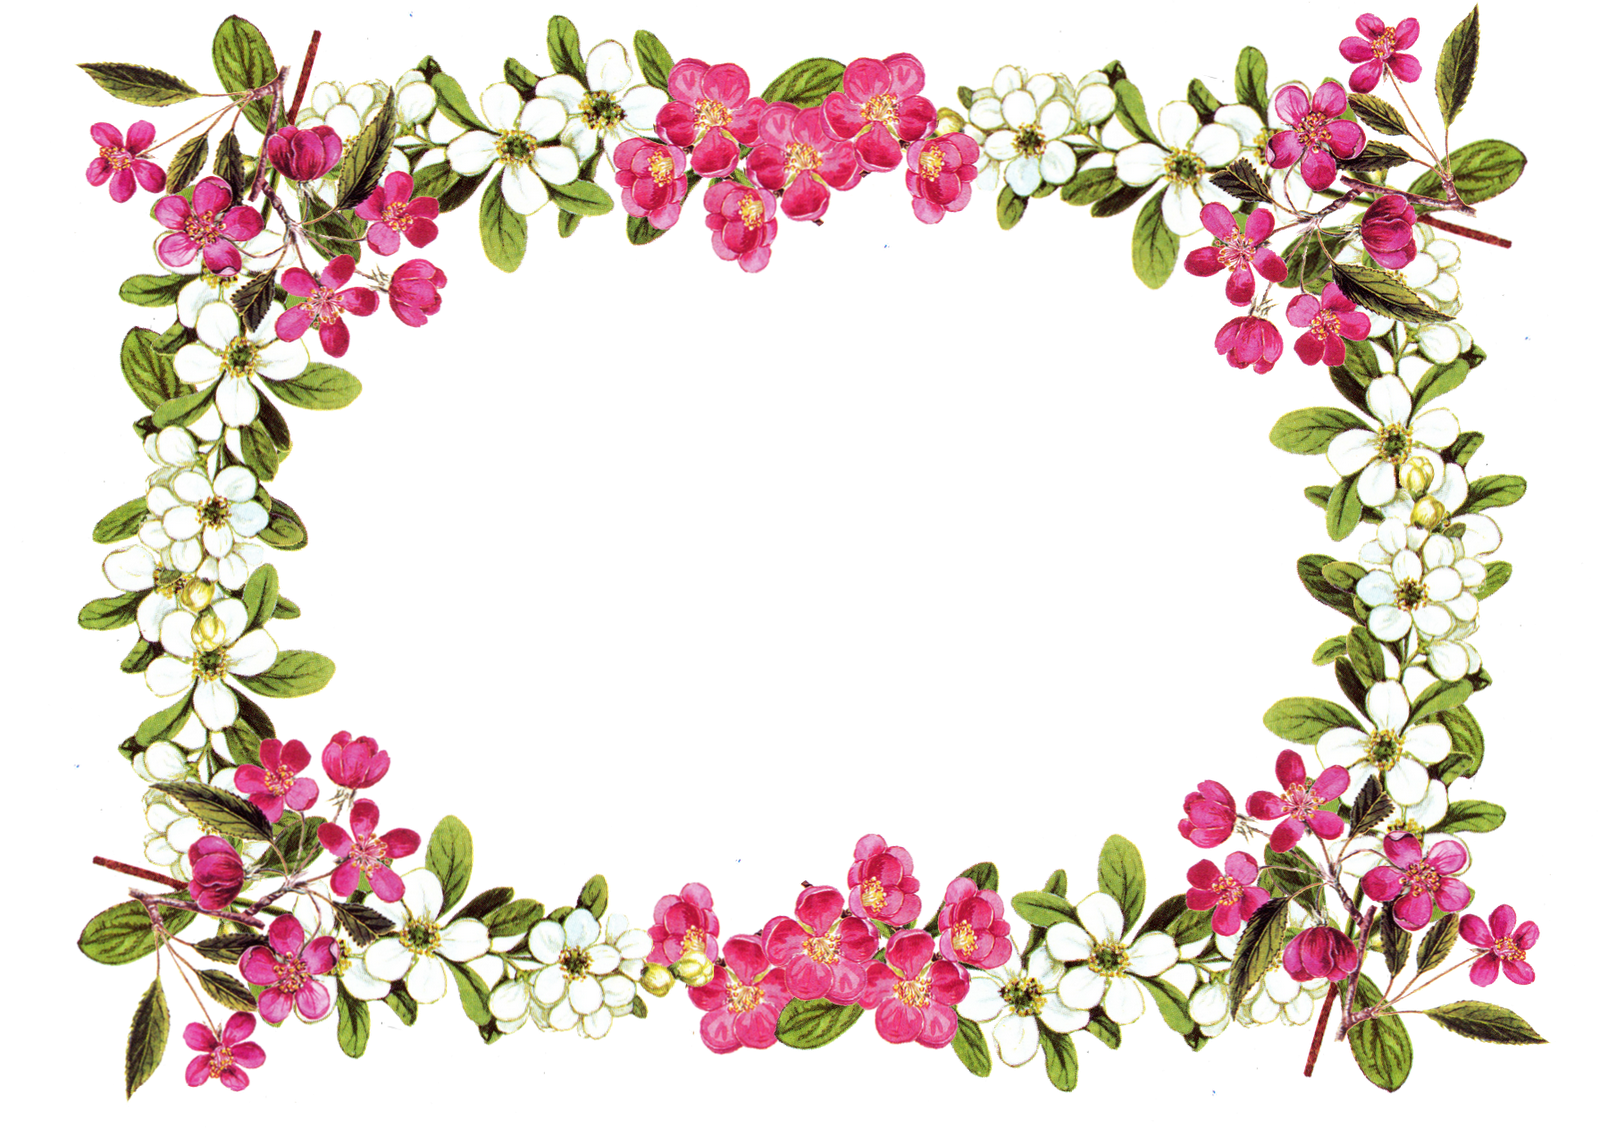 Free downloadable pictures of flowers jpg library download Free Printable Clip Art Borders | free digital flower frame png and ... jpg library download